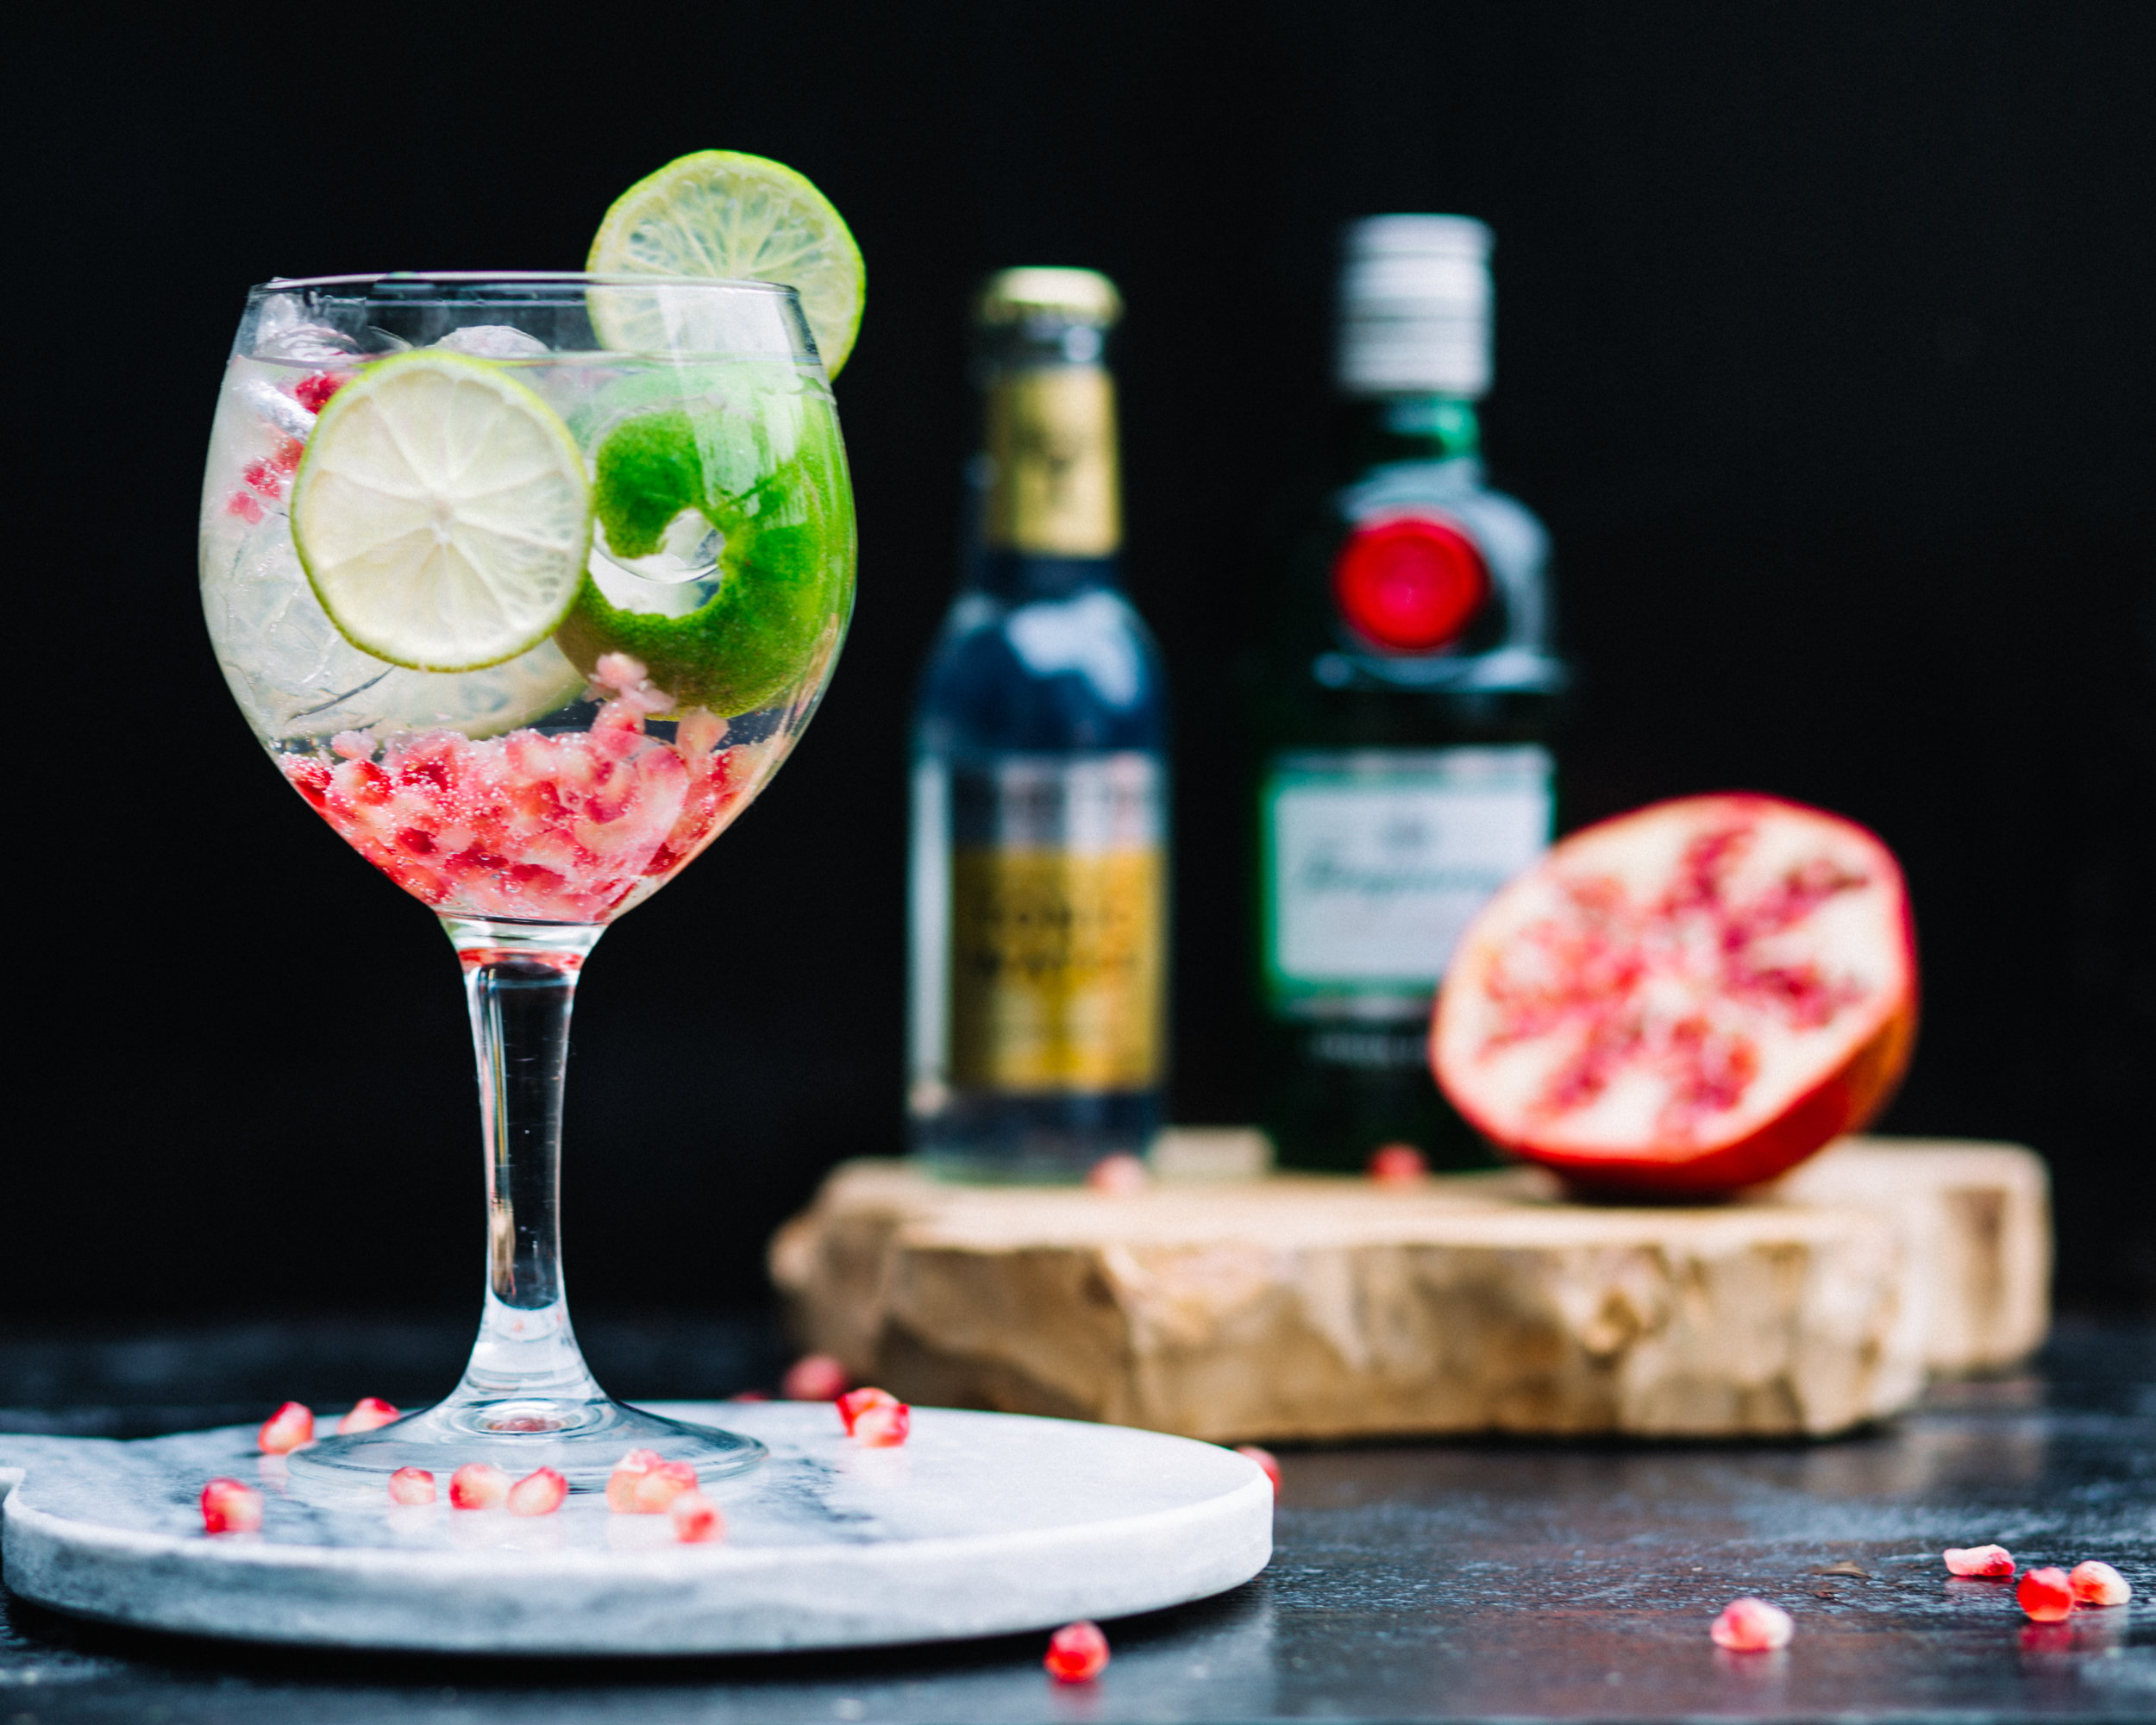 Letscoakcocktail - tanqueray2.jpg